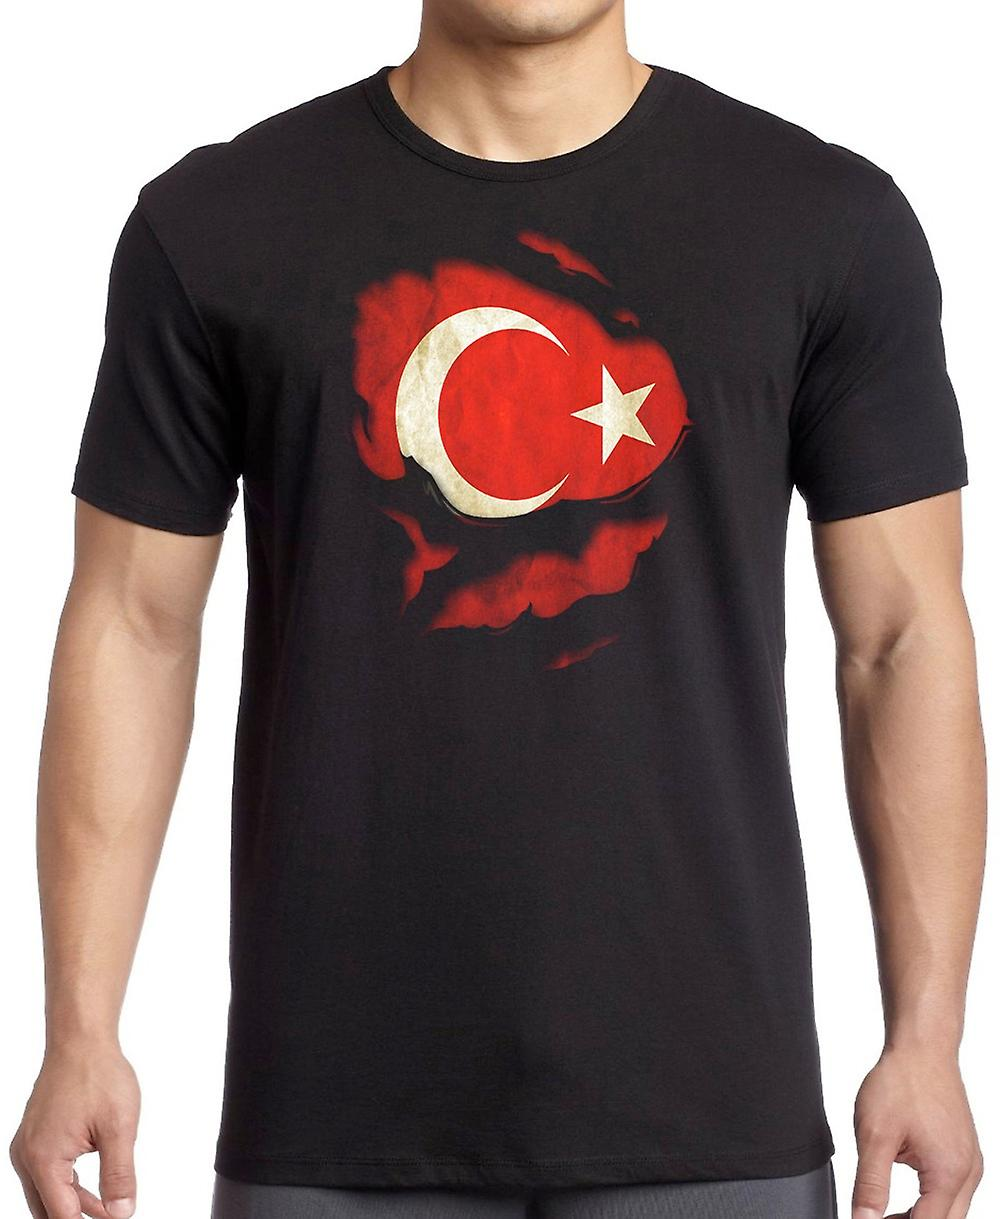 Turkey Ripped Effect Under Shirt Kids T Shirt